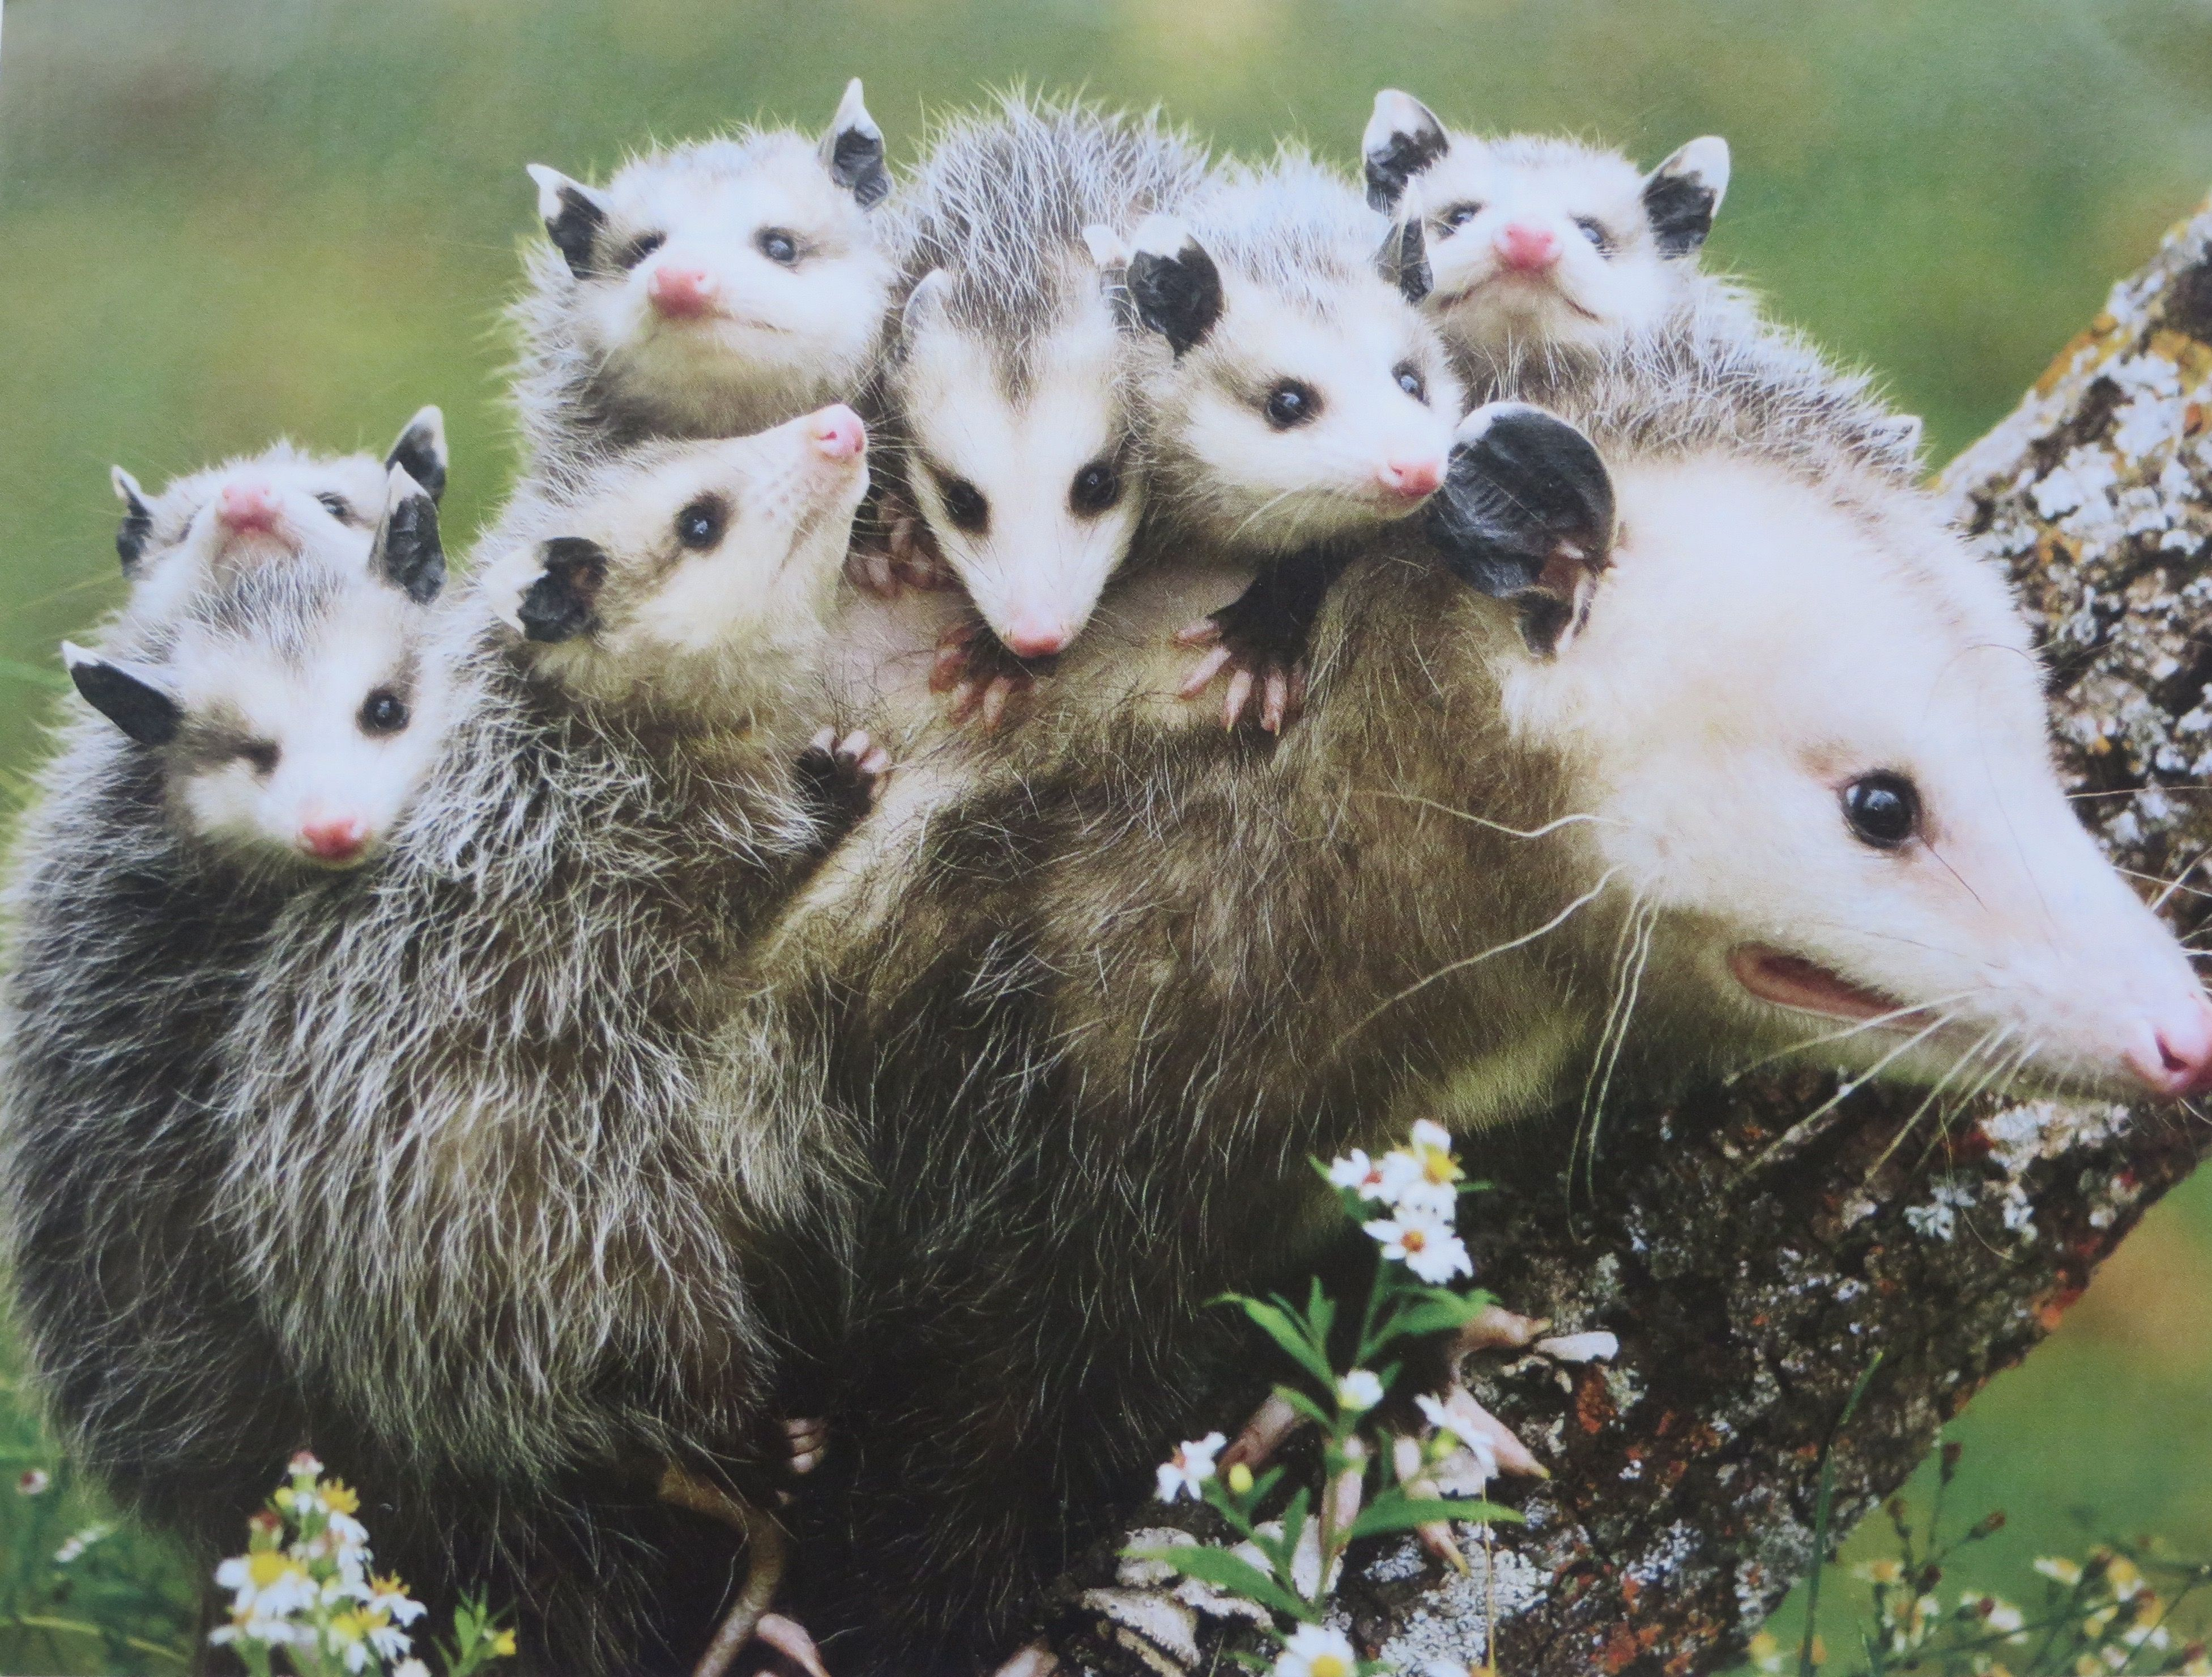 Mother opossum and babies. They are hanging on tight ...